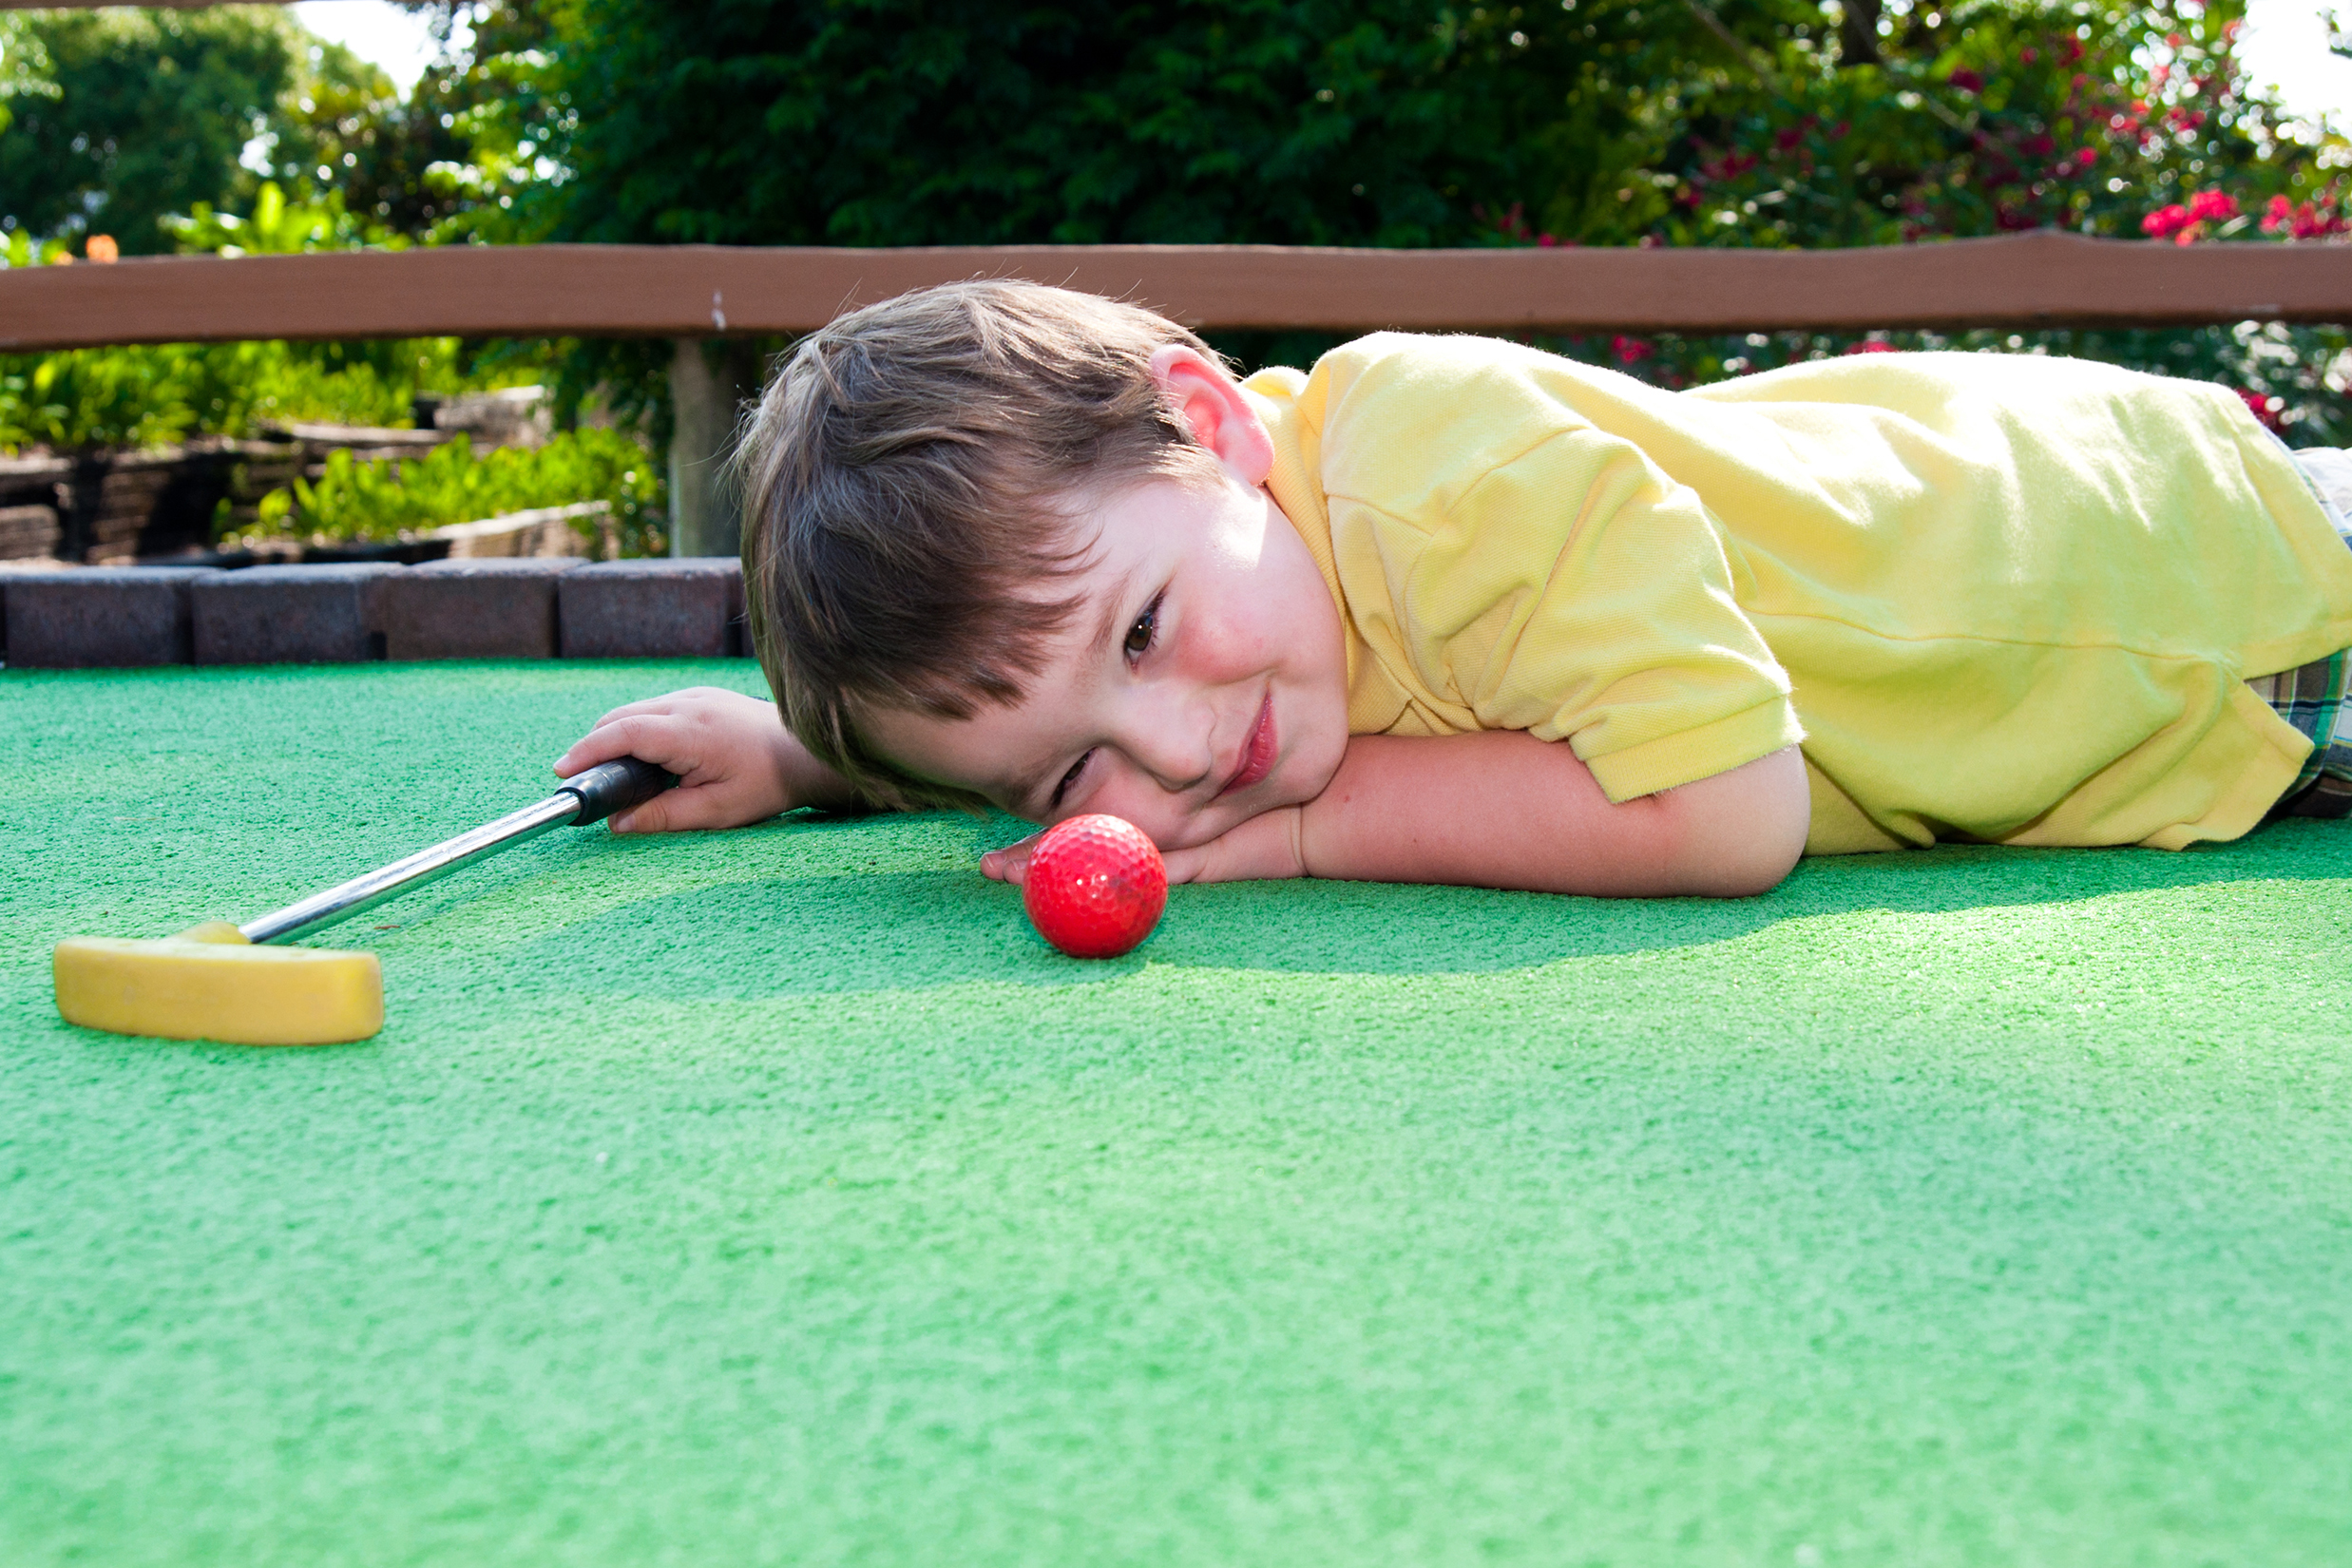 Kid laying on the mini golf course